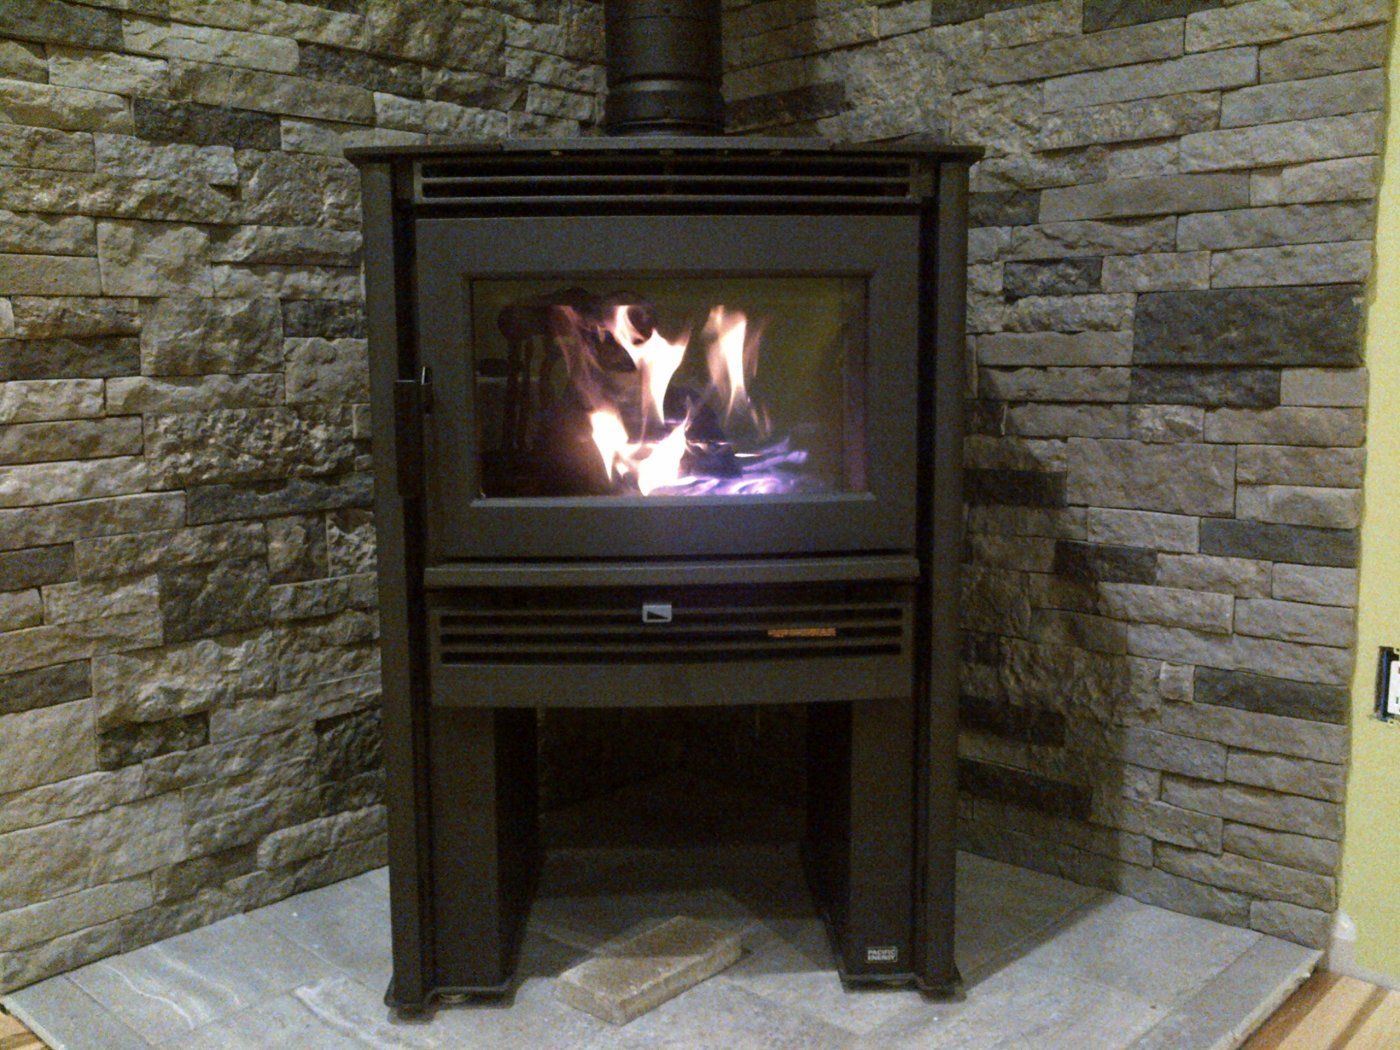 Wood Burning Fireplace Inserts Lowes Pellet Stove Inserts Lowes Lowes Fireplace Mantels Kits